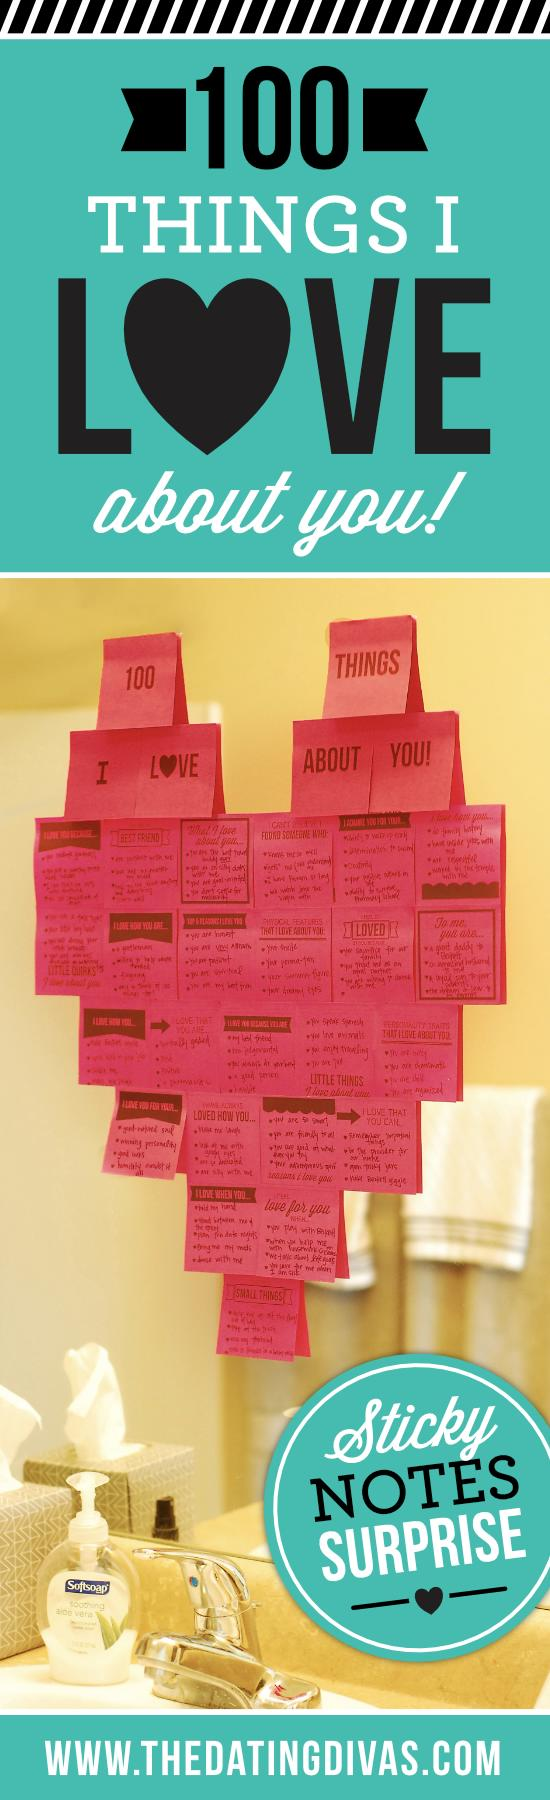 100 Things I Love About You Sticky Note Surprise banner